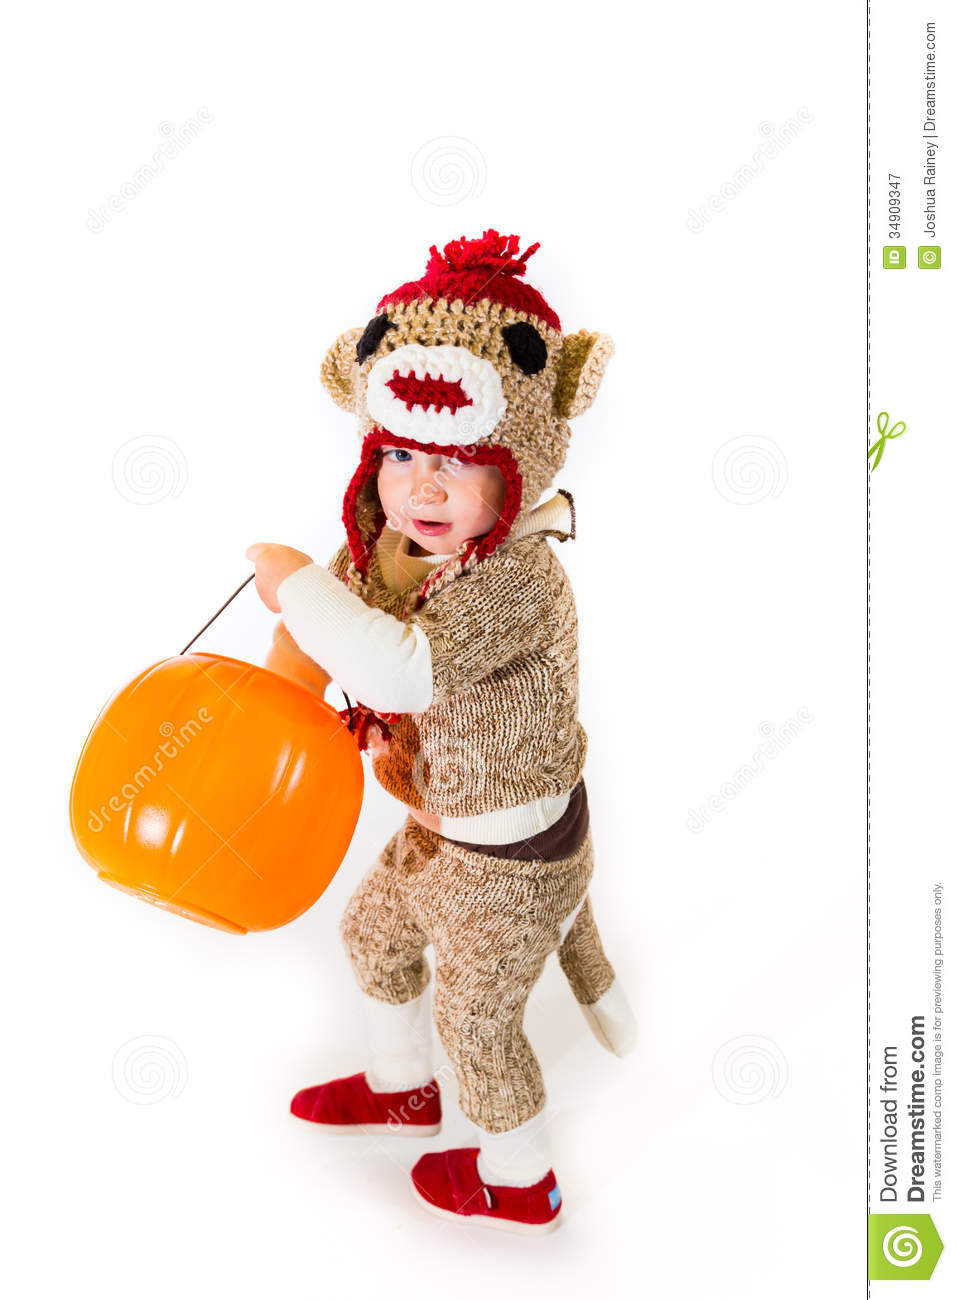 sock monkey halloween costume stock image - image of holiday, animal